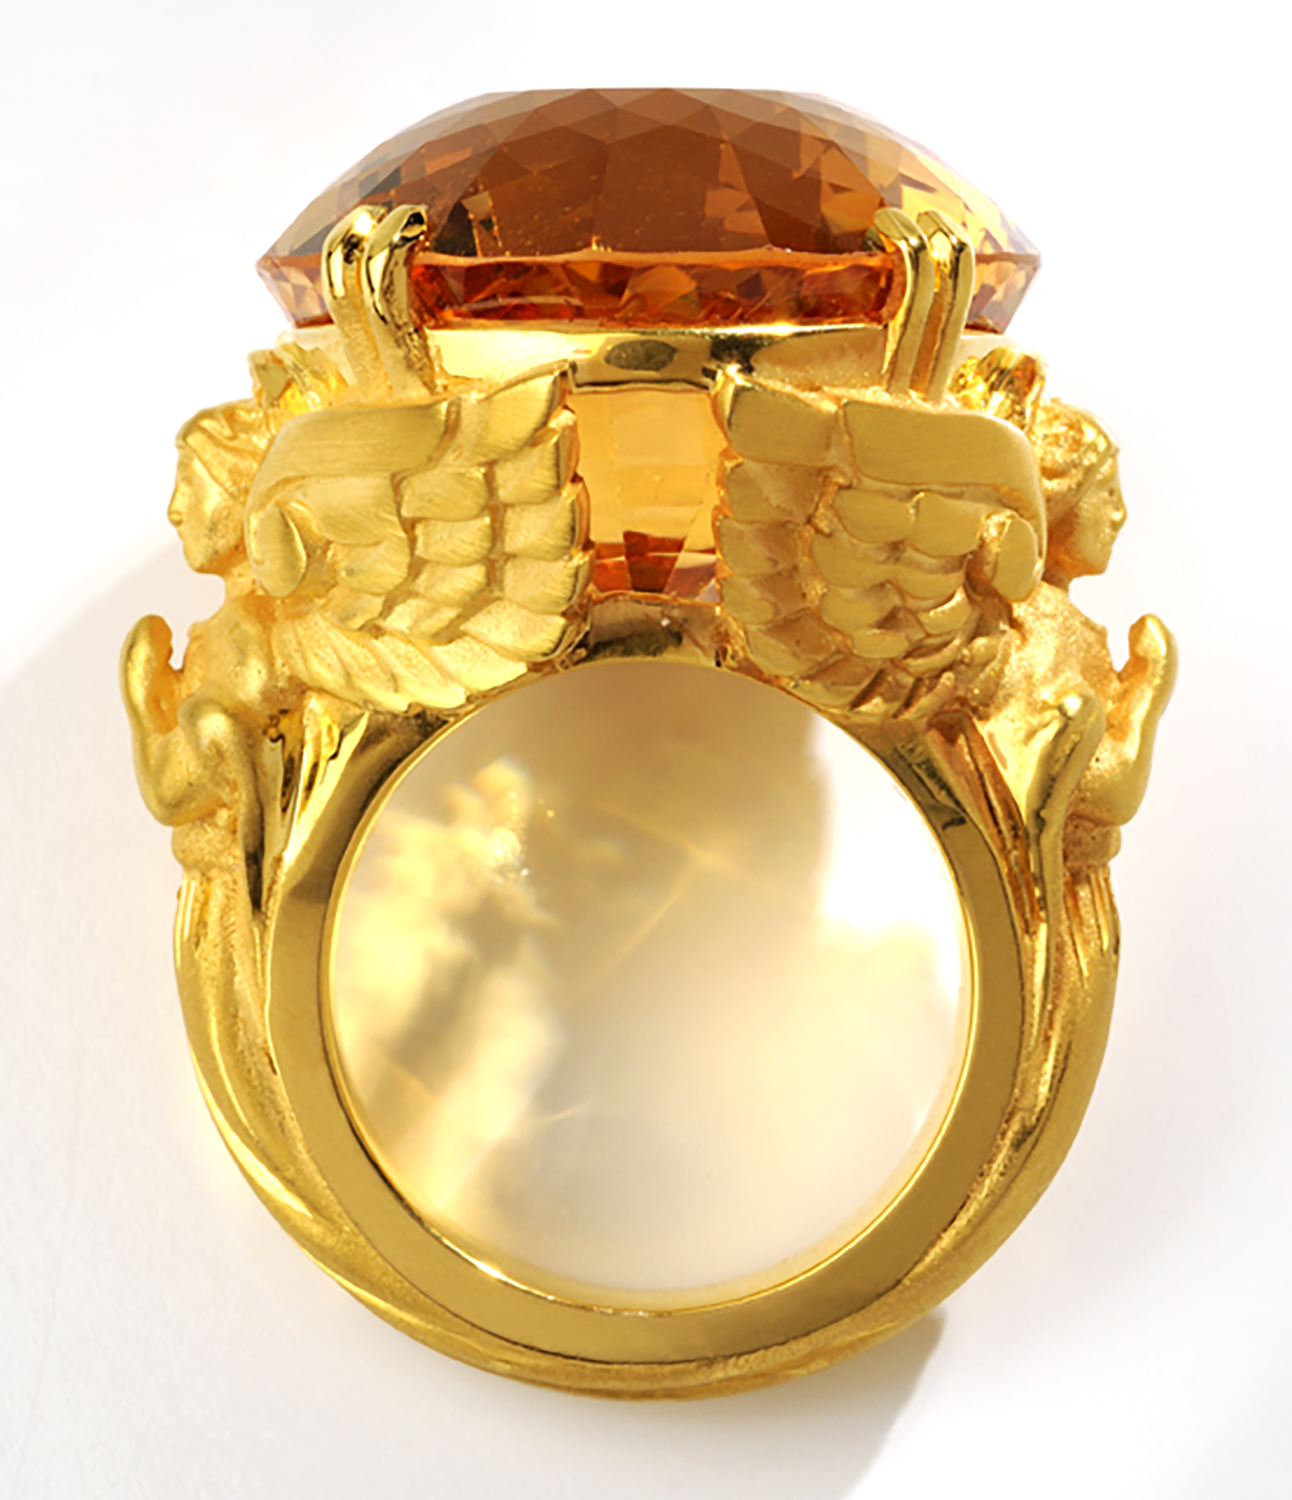 Large museum oval topaz mounted on heavy gold ring flanked by twin angel carvings on white background Product Photography